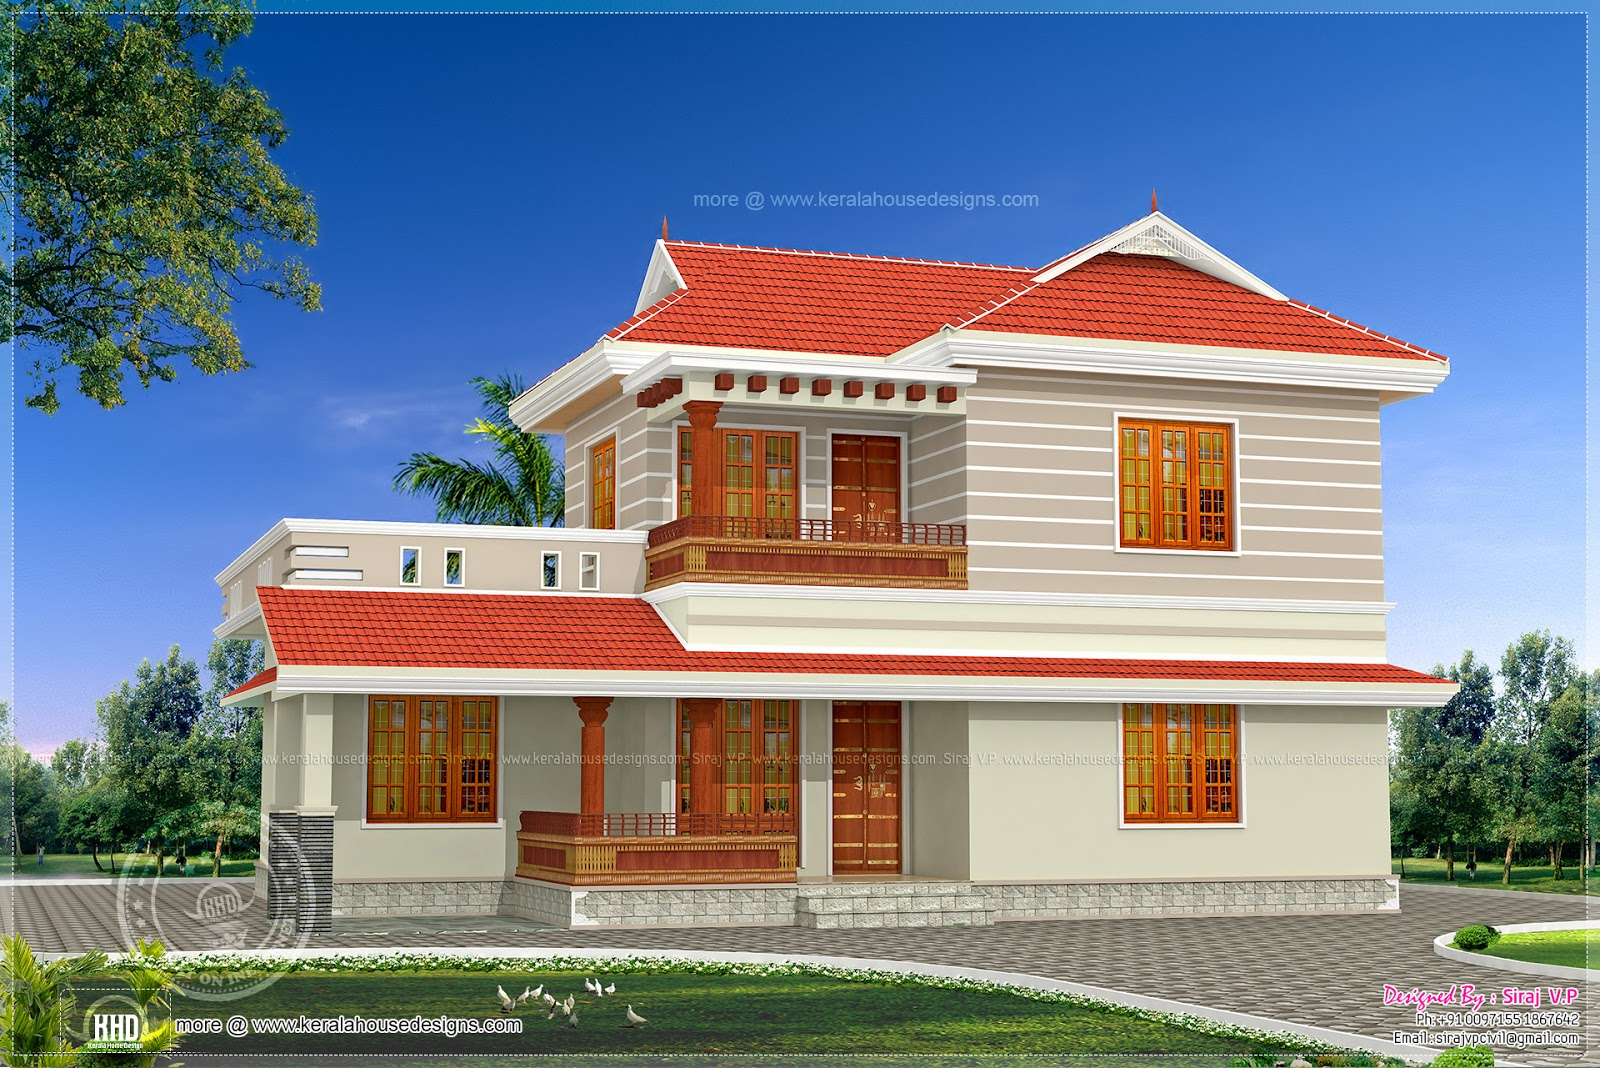 3 bedroom house exterior design in 200 square yards for Square house design